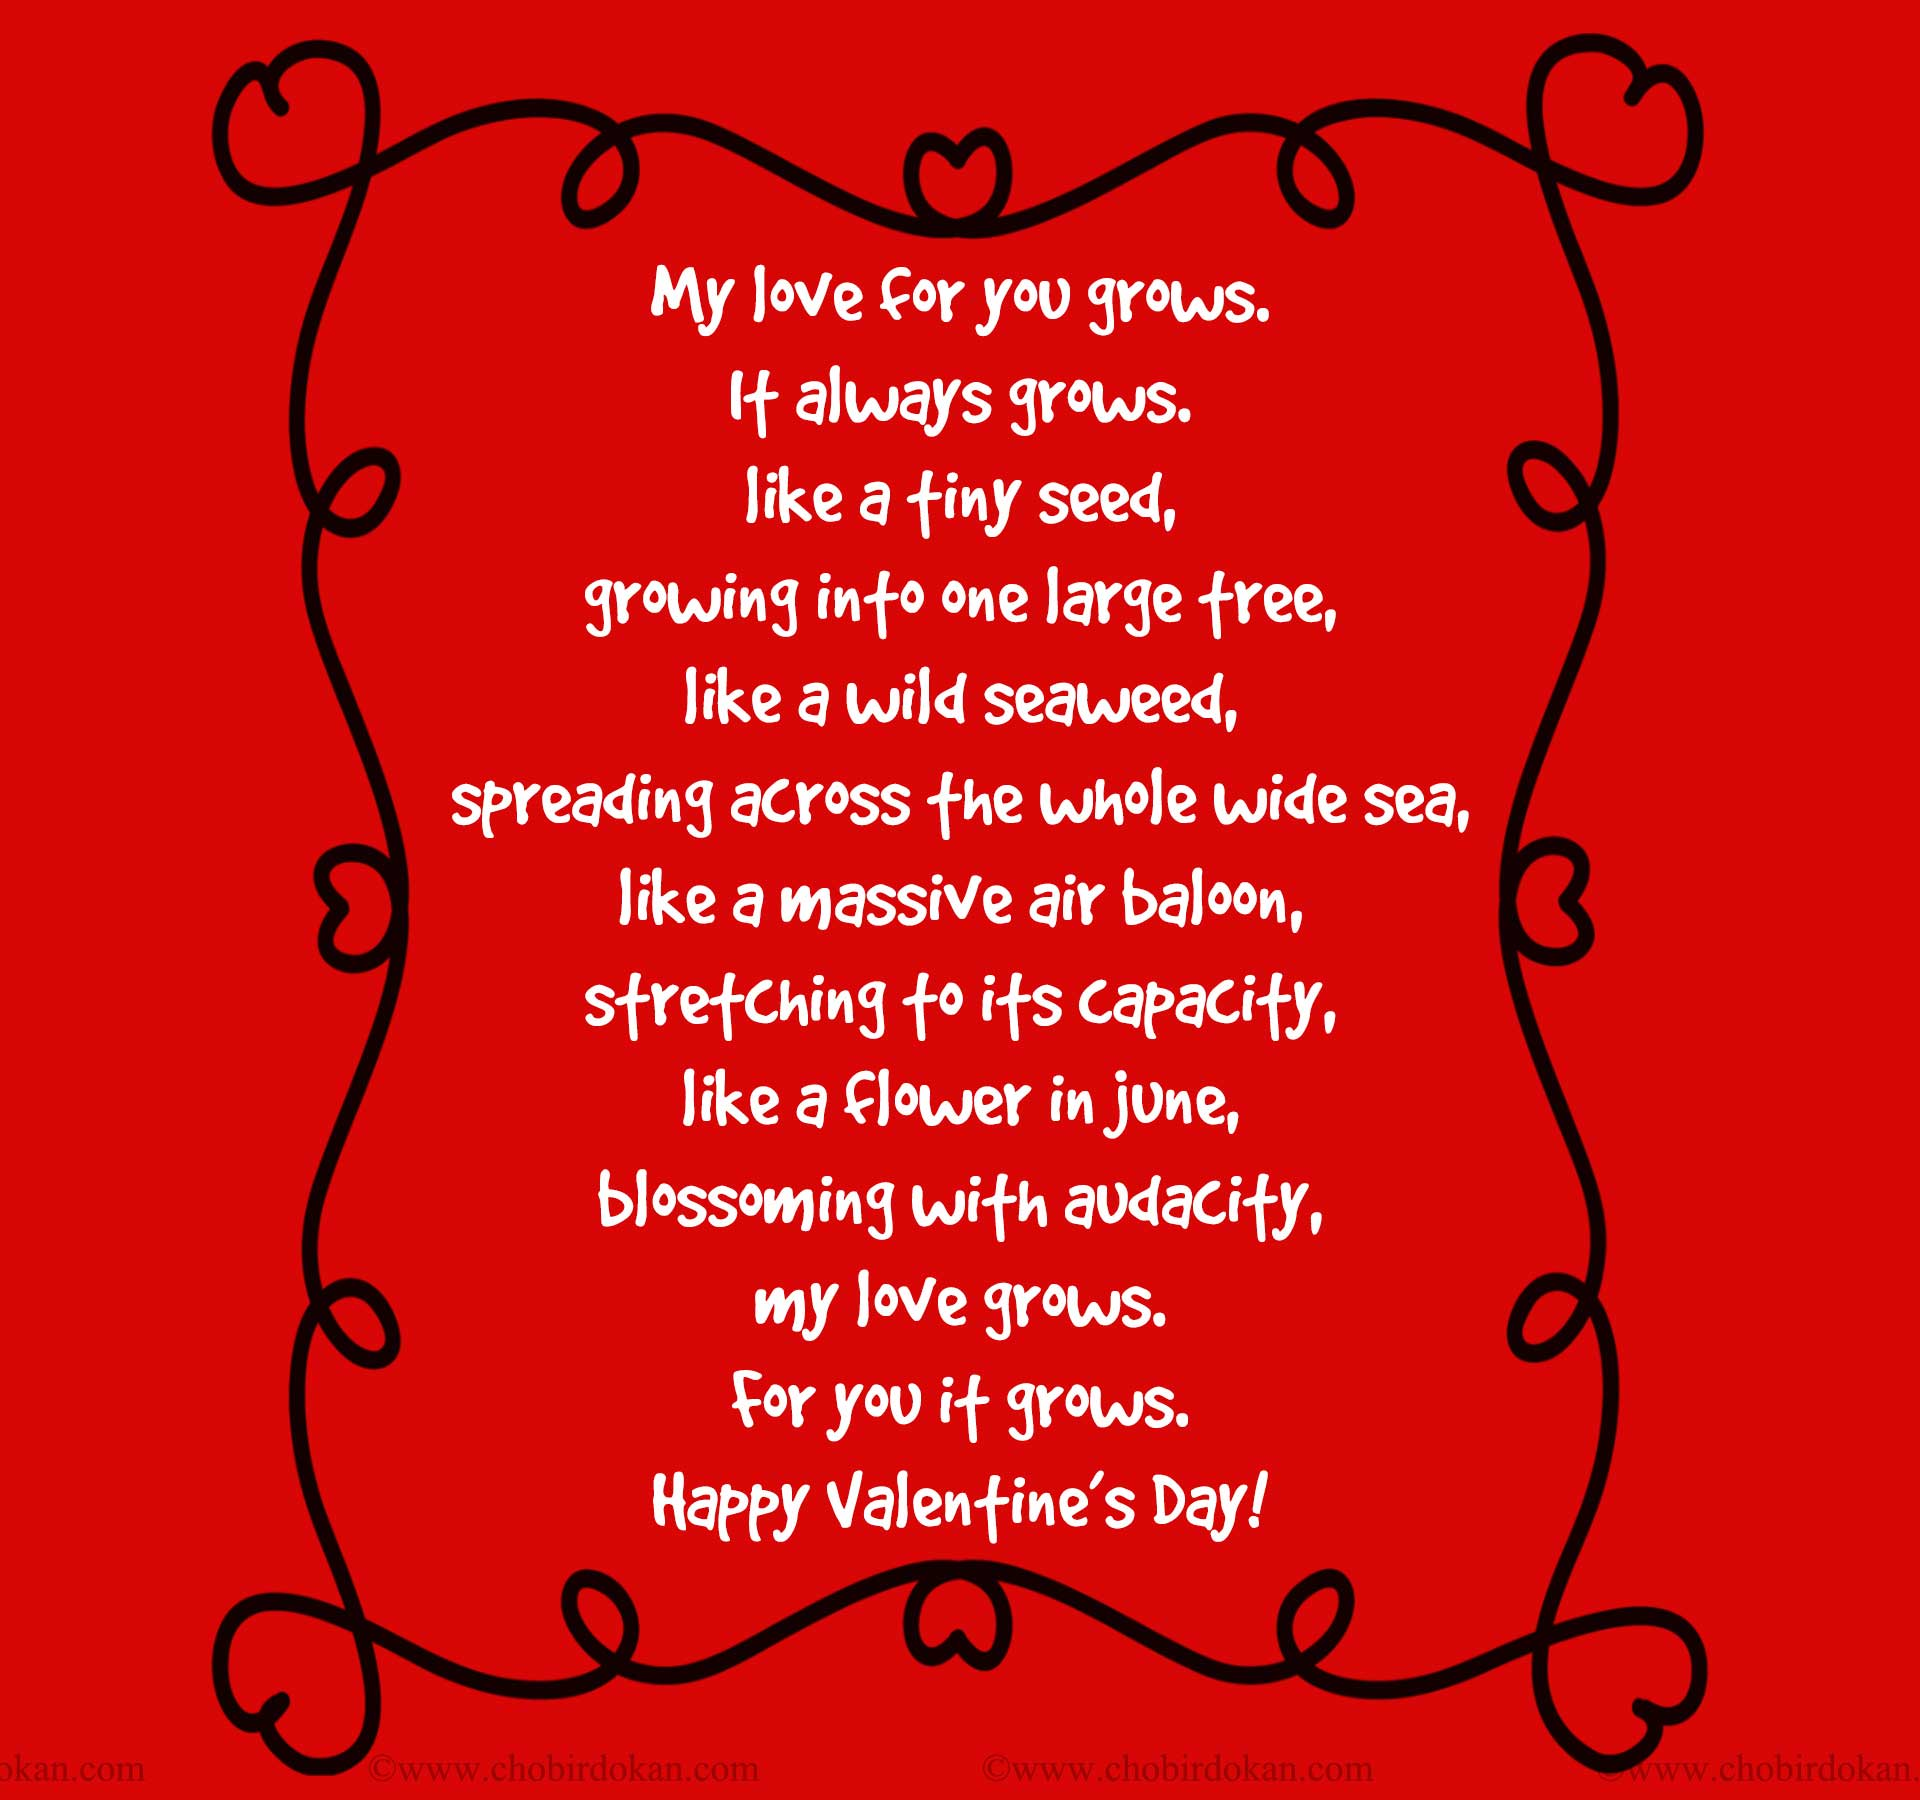 Schön Valentines Day Poems For Your Husband